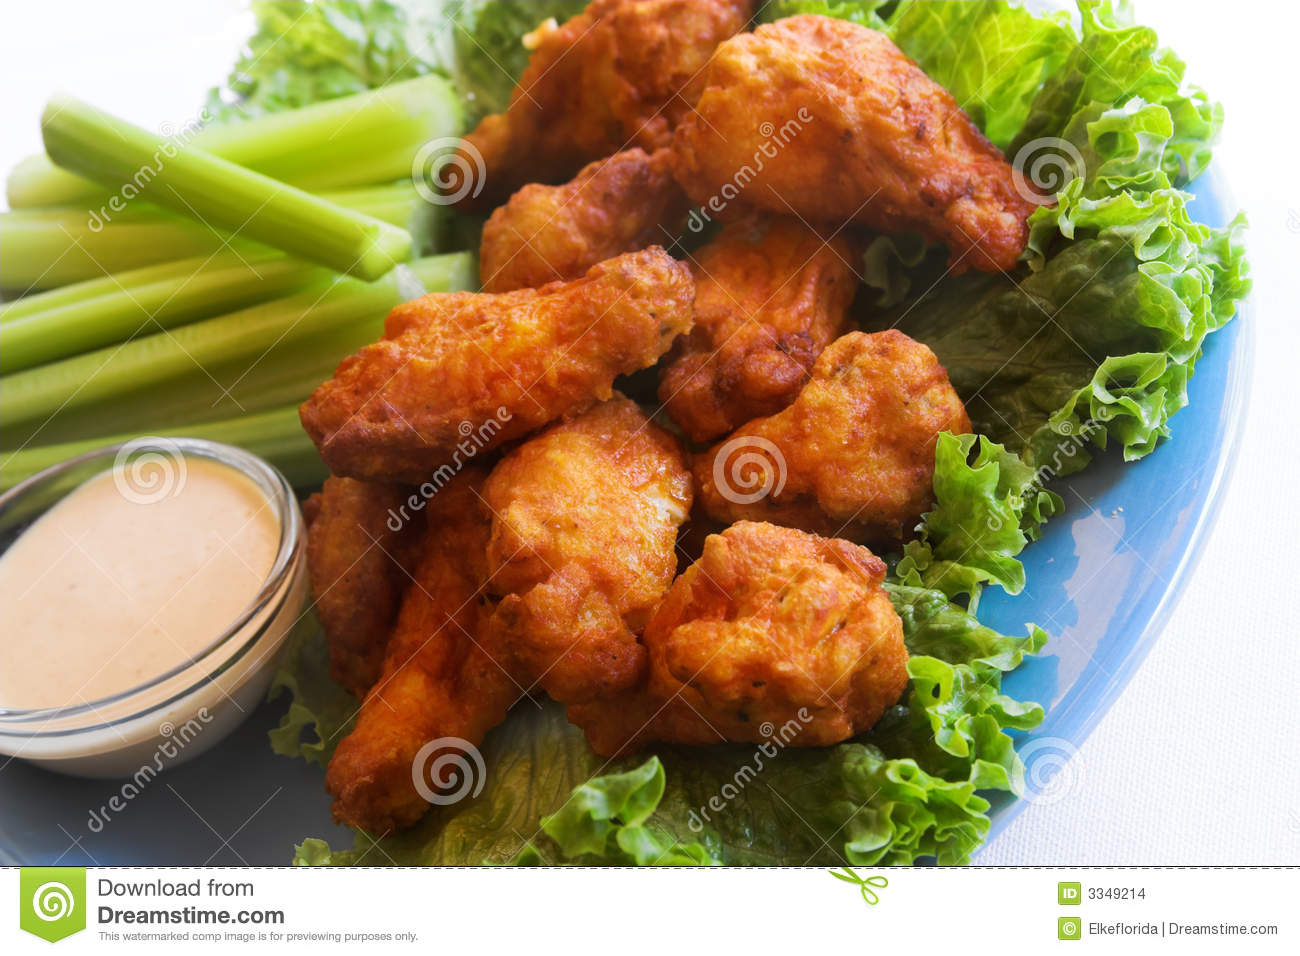 Chicken Wings And Dip Stock Images - Image: 3349214